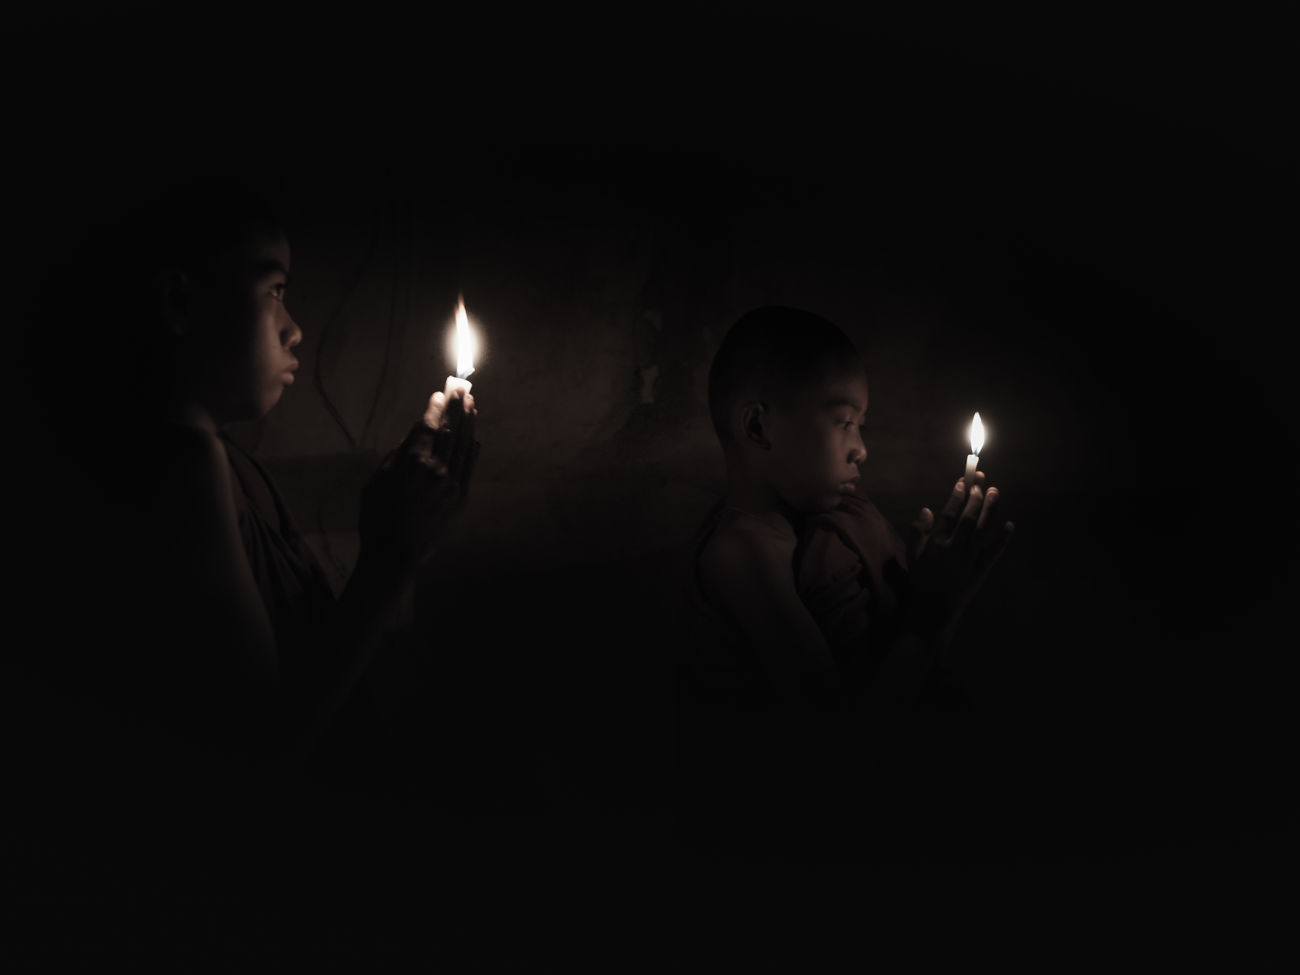 Black Background Burning Candle Dark Darkroom Flame Heat - Temperature Illuminated Night Novice Novice Monks One Person People Smoke - Physical Structure Young Adult